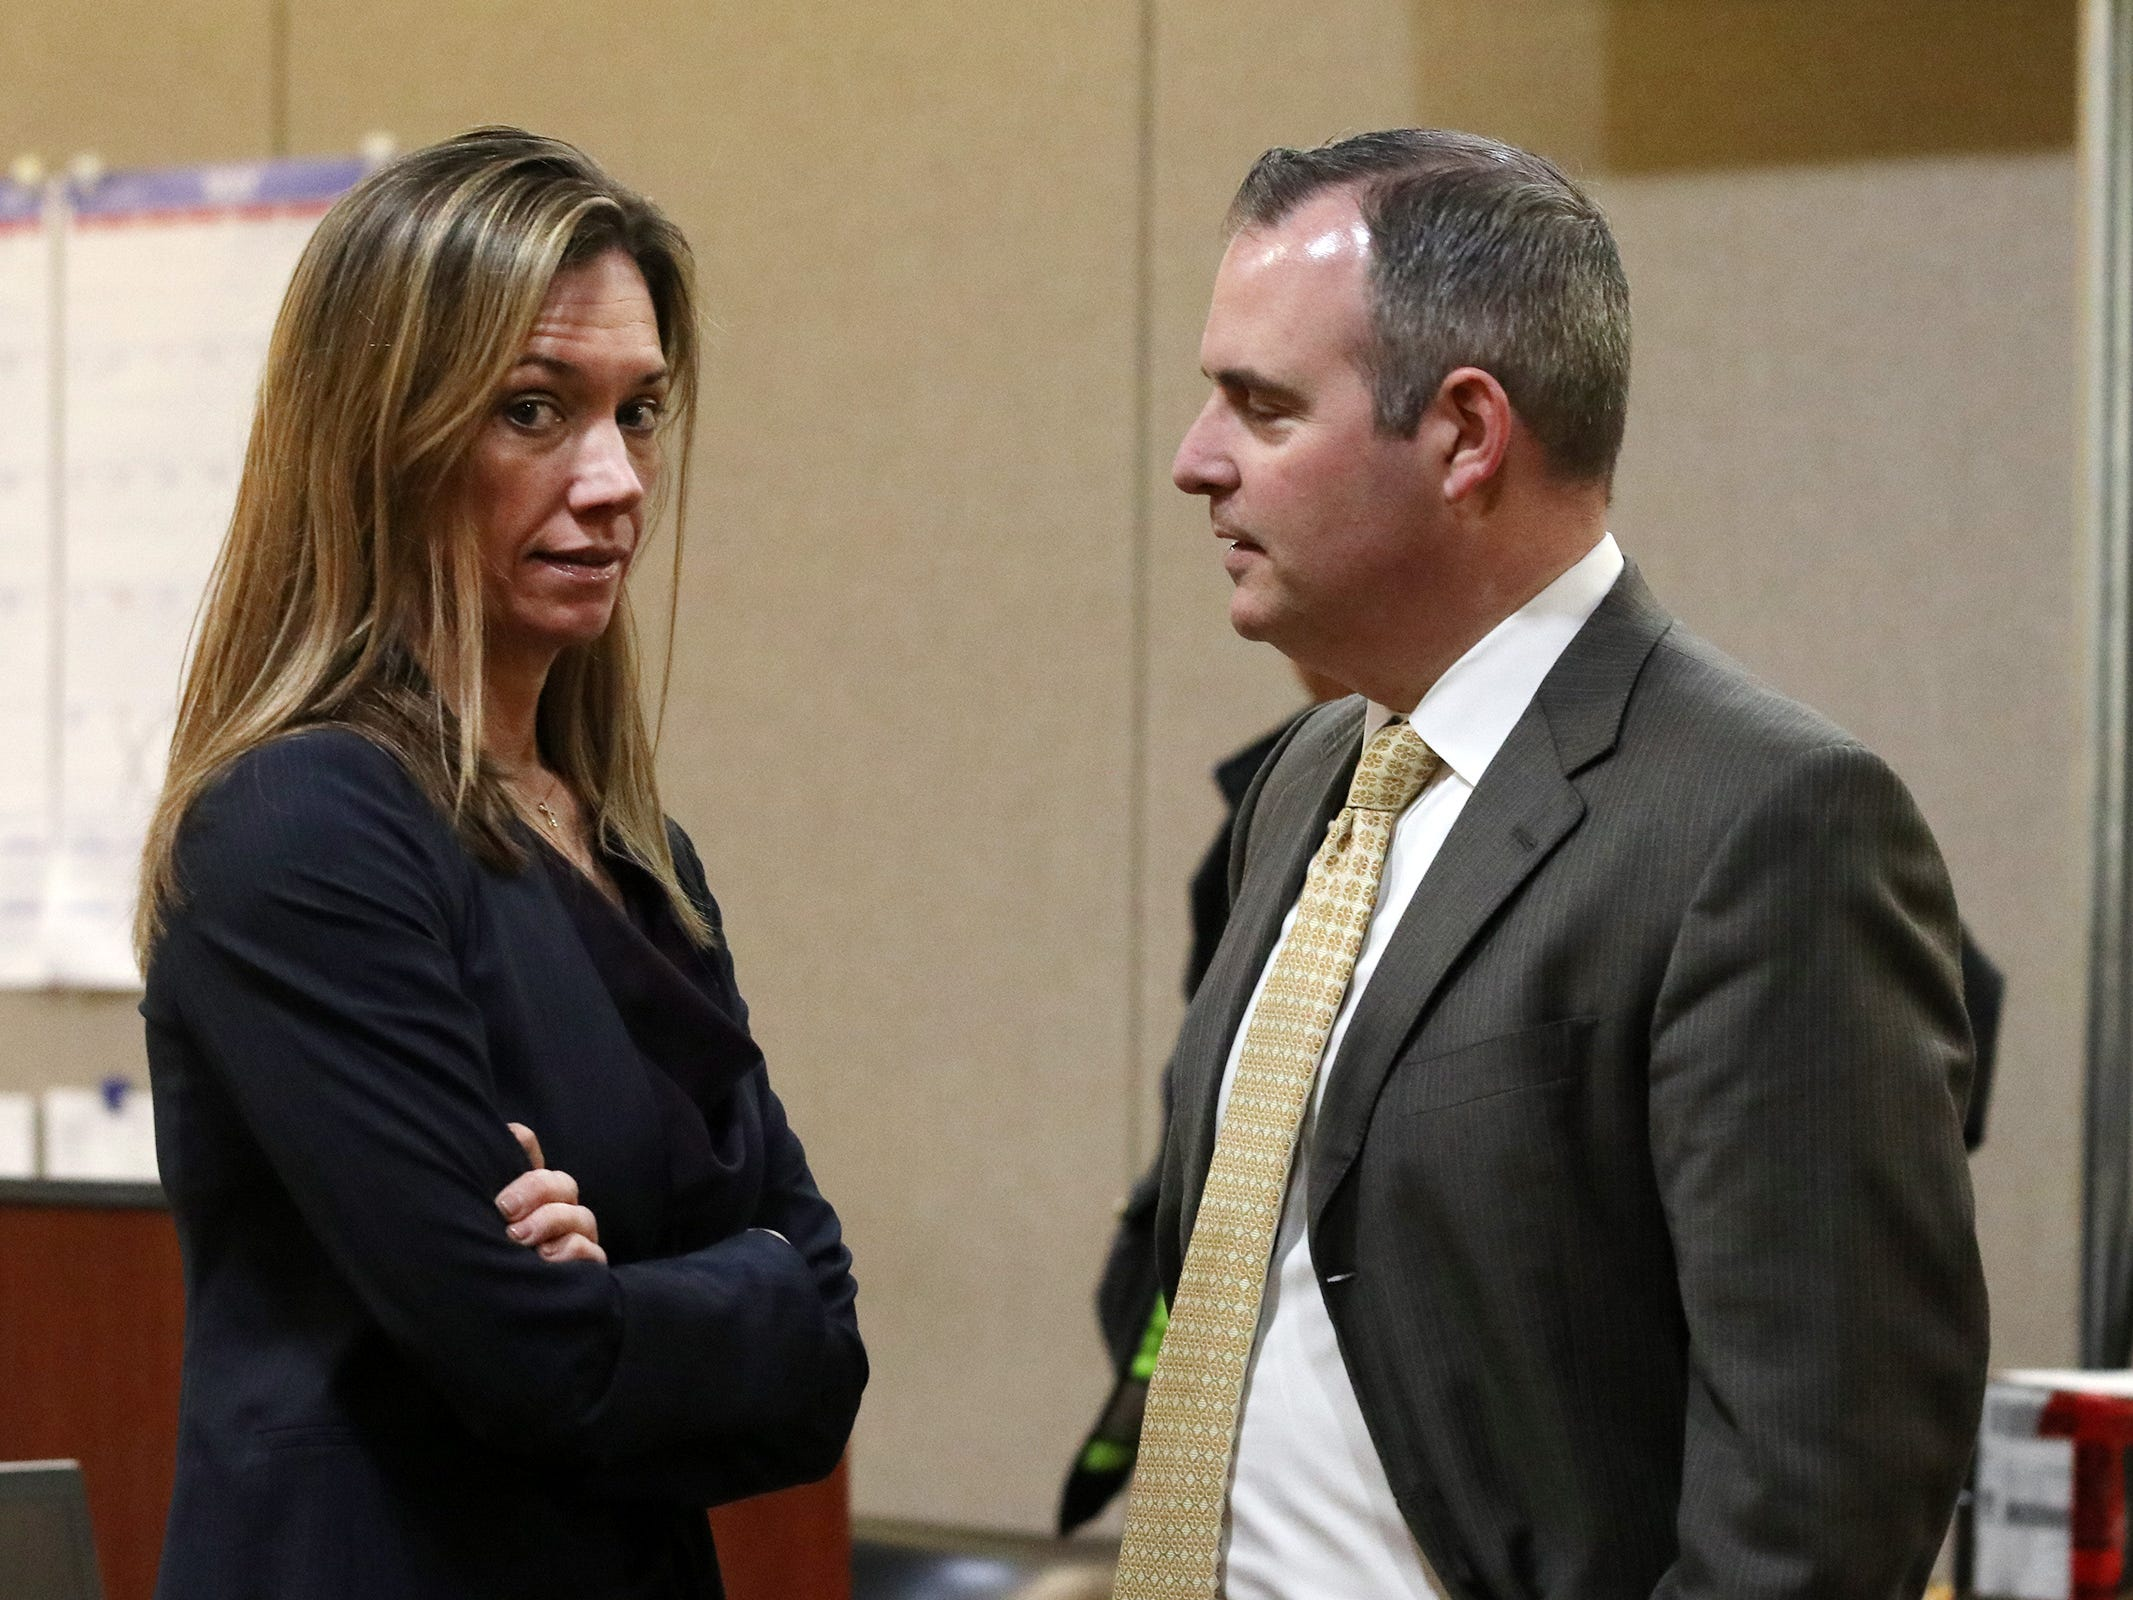 Monmouth County assistant prosecutors Meghan Doyle and Christopher Decker talk during a short recess in the trial of Liam McAtasney, who is charged with the murder of former high school classmate, Sarah Stern, before Superior Court Judge Richard W. English at the Monmouth County Courthouse in Freehold, NJ Wednesday, February 13, 2019. The jury was sent for the day after Carlos Diaz-Cobo, the defense attorney, made a motion for a mistrial over a post made on a juror's Facebook page.